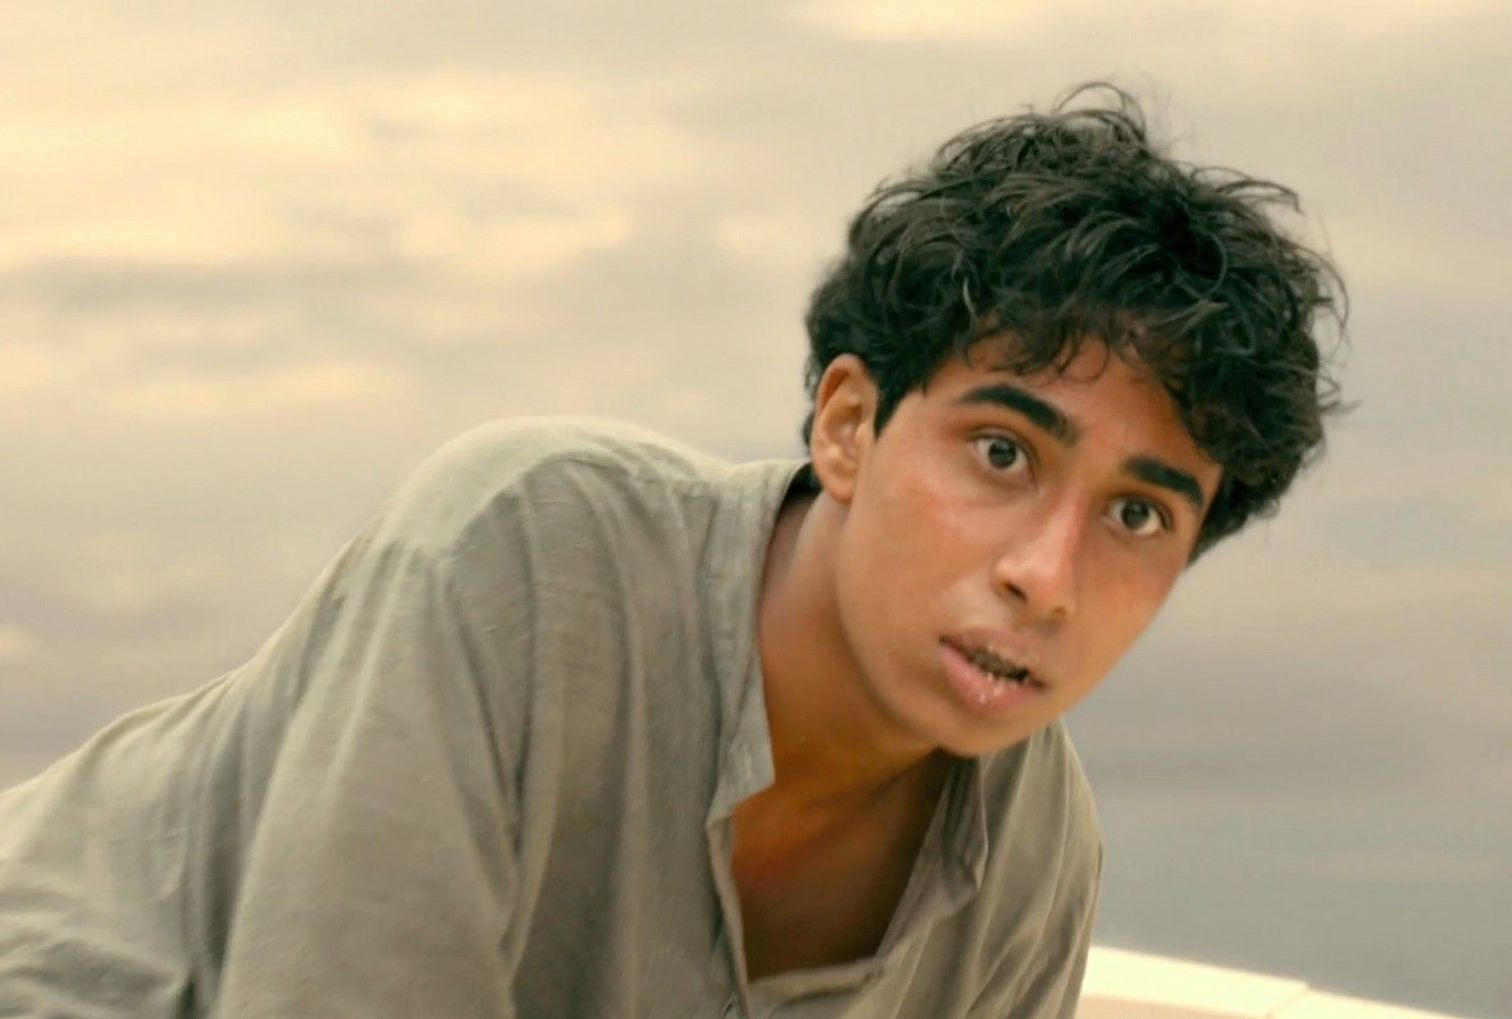 the film sufi life of pi ang lee 2012